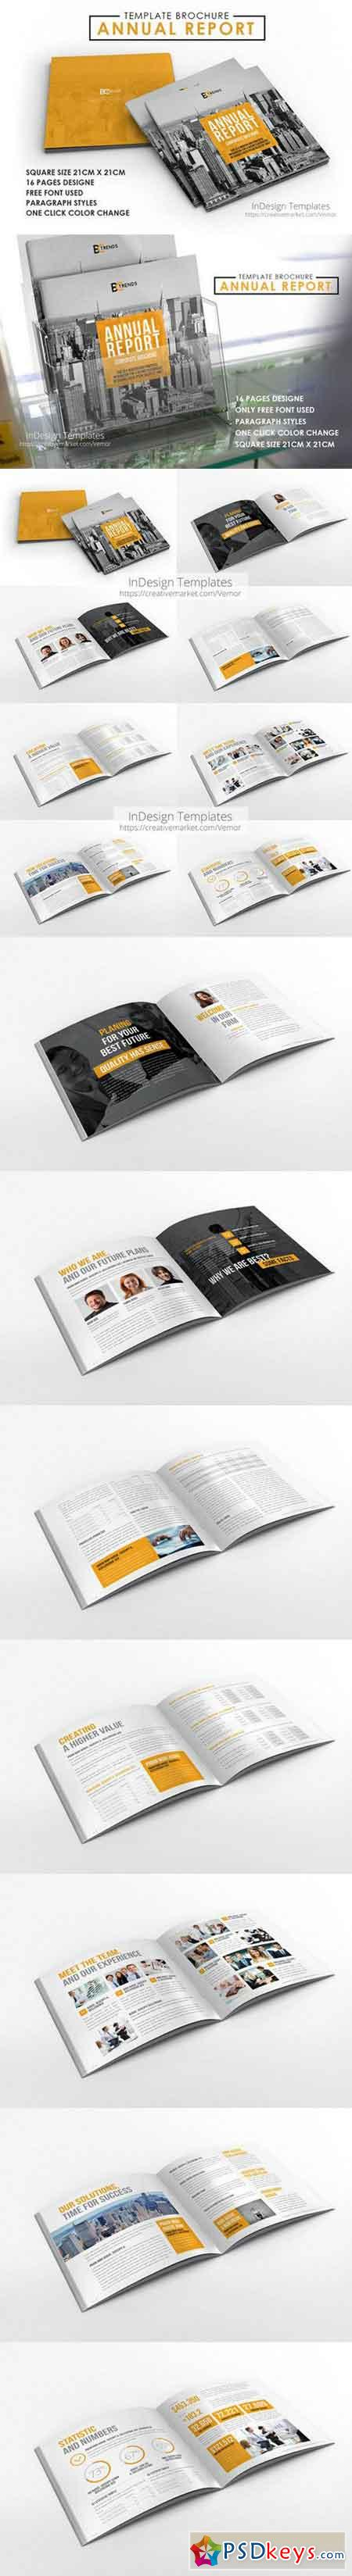 2017 Annual Report Brochure 889019 » Free Download Photoshop Vector ...